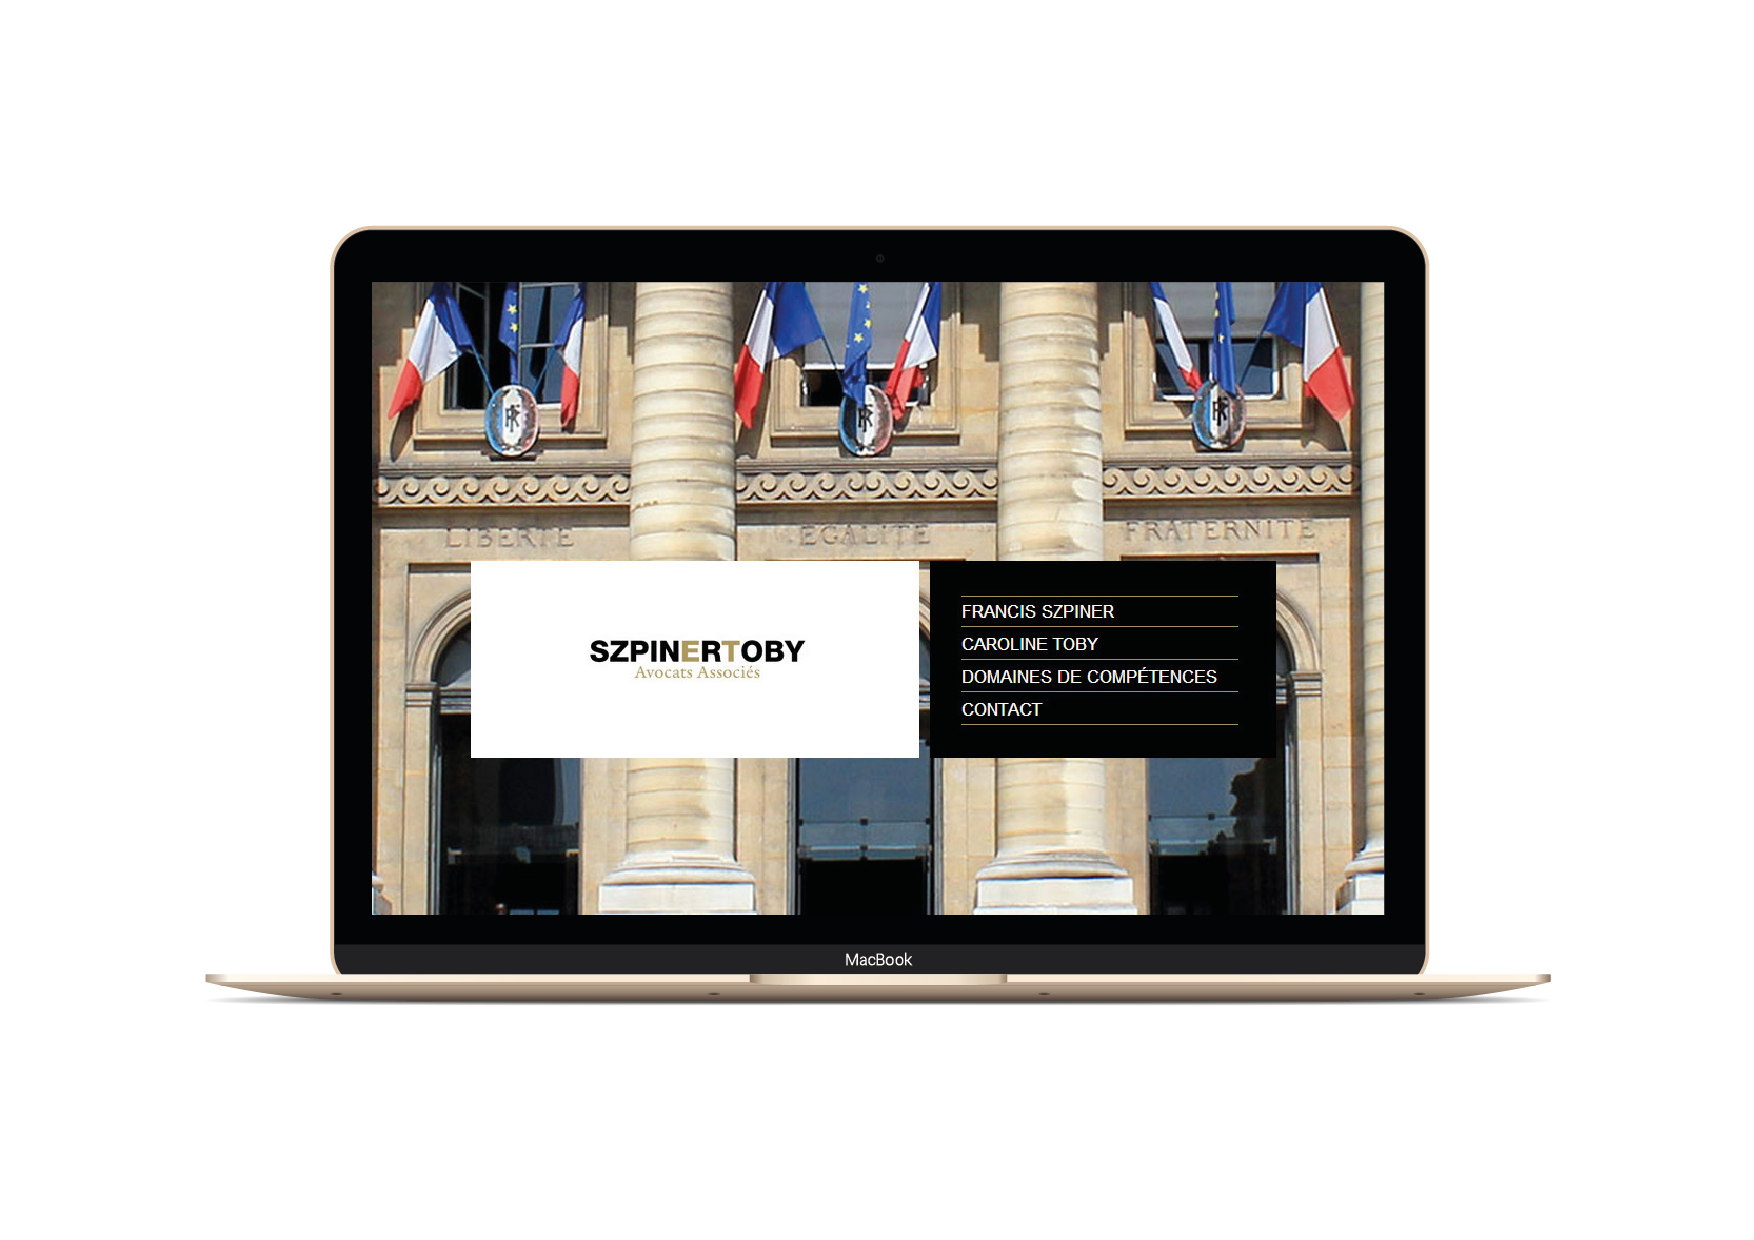 Morgan-Cahoue-WebDesign--001-04.png